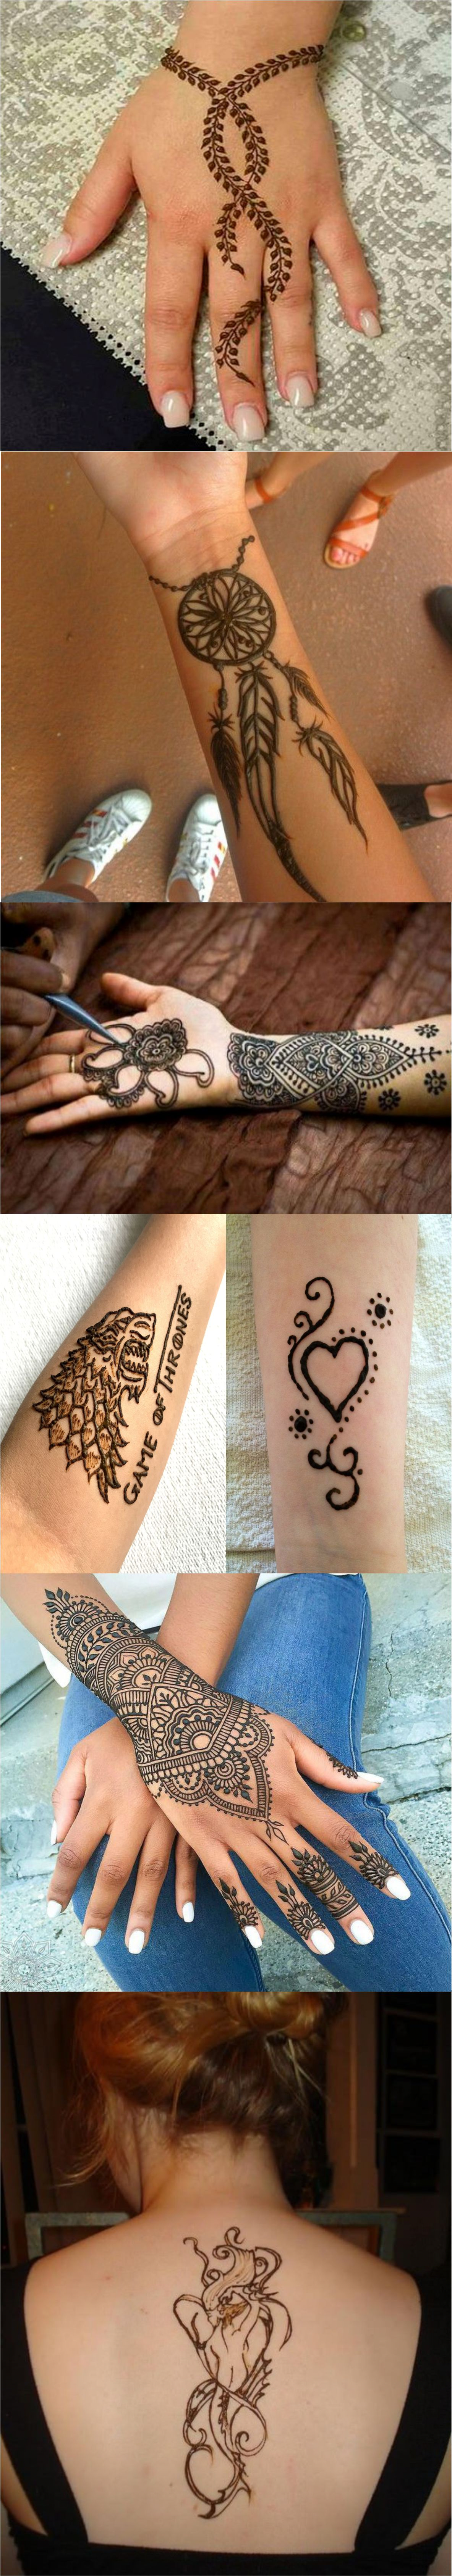 Best Henna tattoo ideas with images